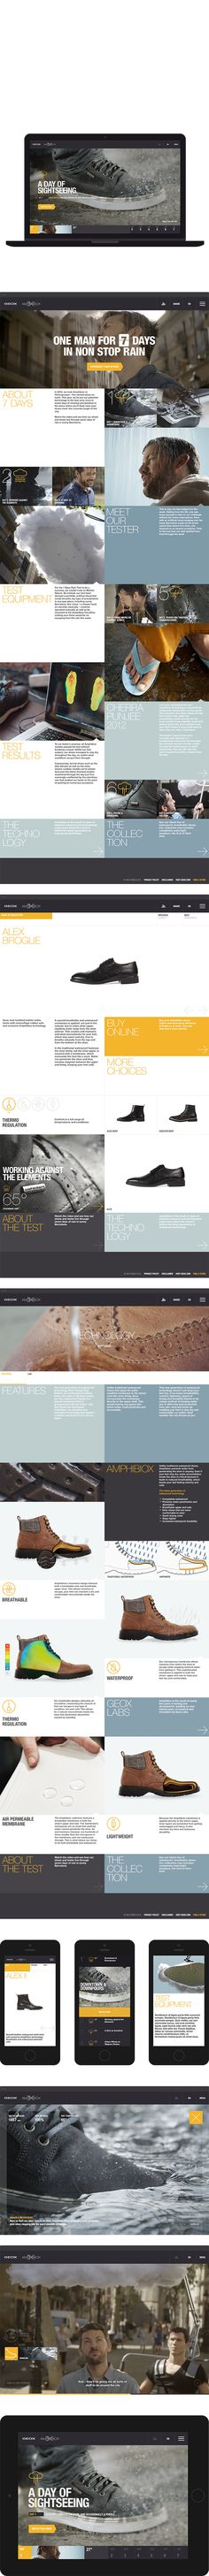 Geox 7 Days of Rain by Marius Roosendaal, via Behance Mobile Web Design, Web Ui Design, Tool Design, Design Ideas, Website Layout, Web Layout, Layout Design, Branding, Ui Web